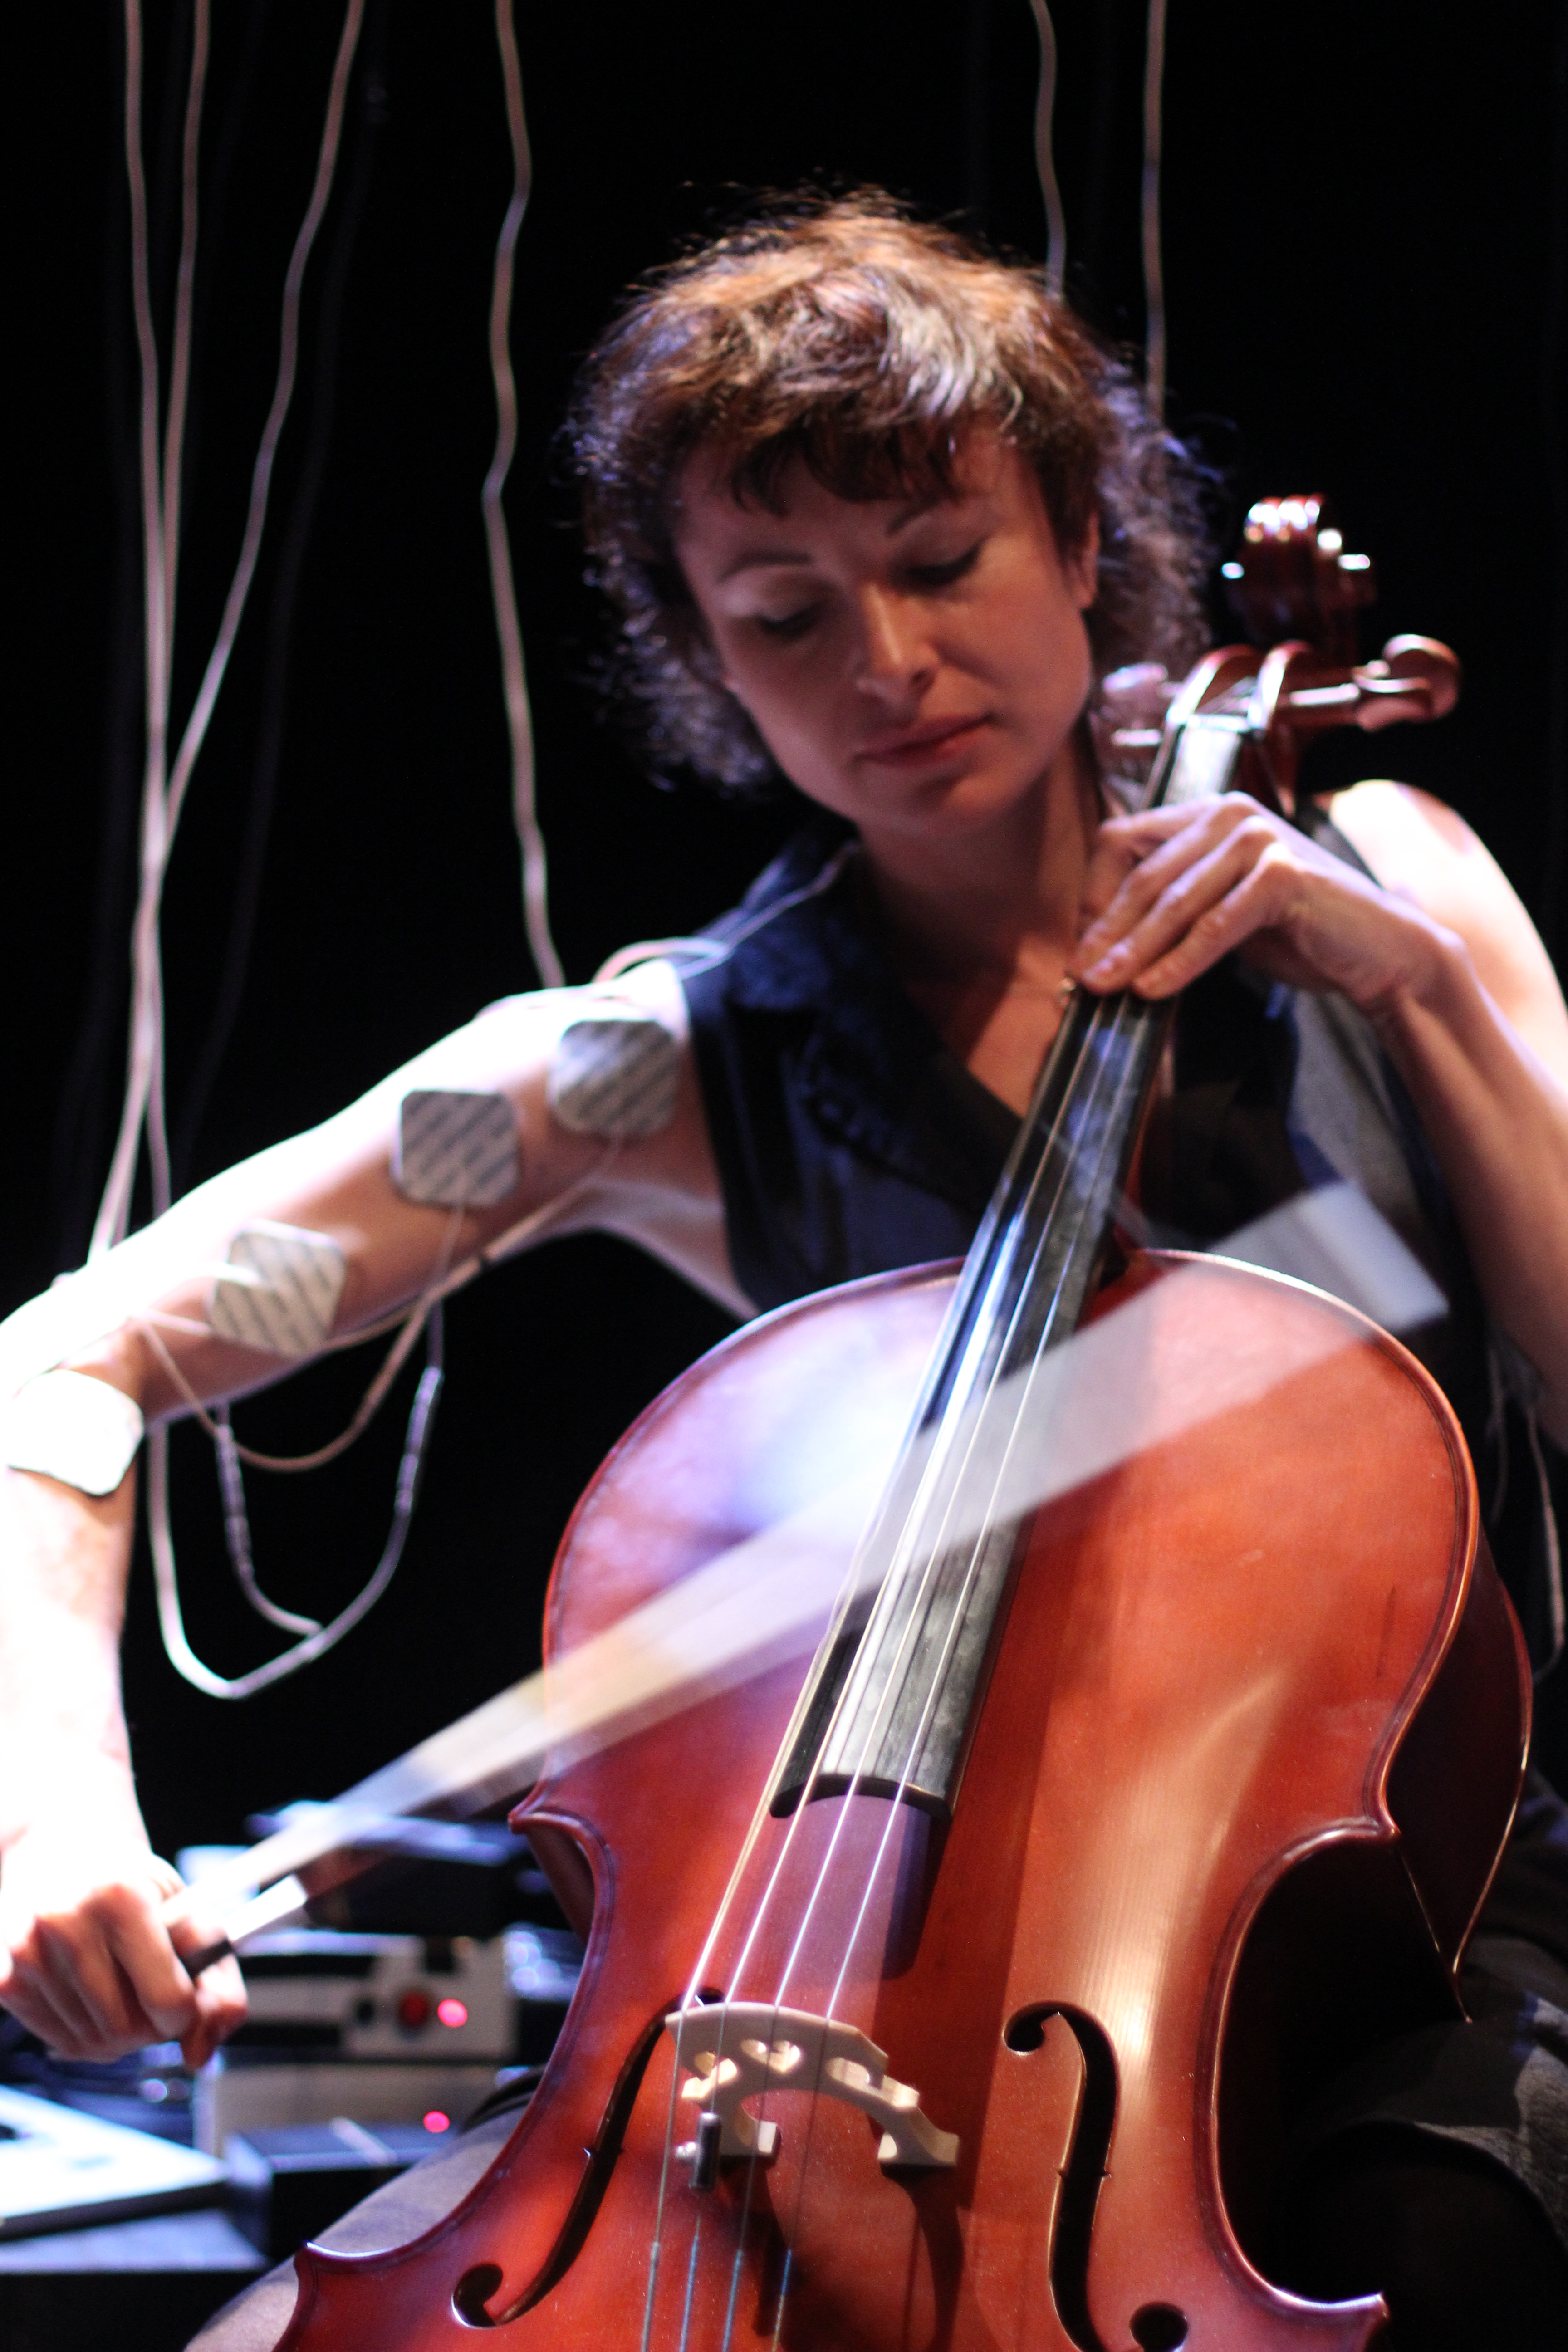 Michaela Davies' performance on a double bass is driven by electric muscle stimulation producing involuntary music.